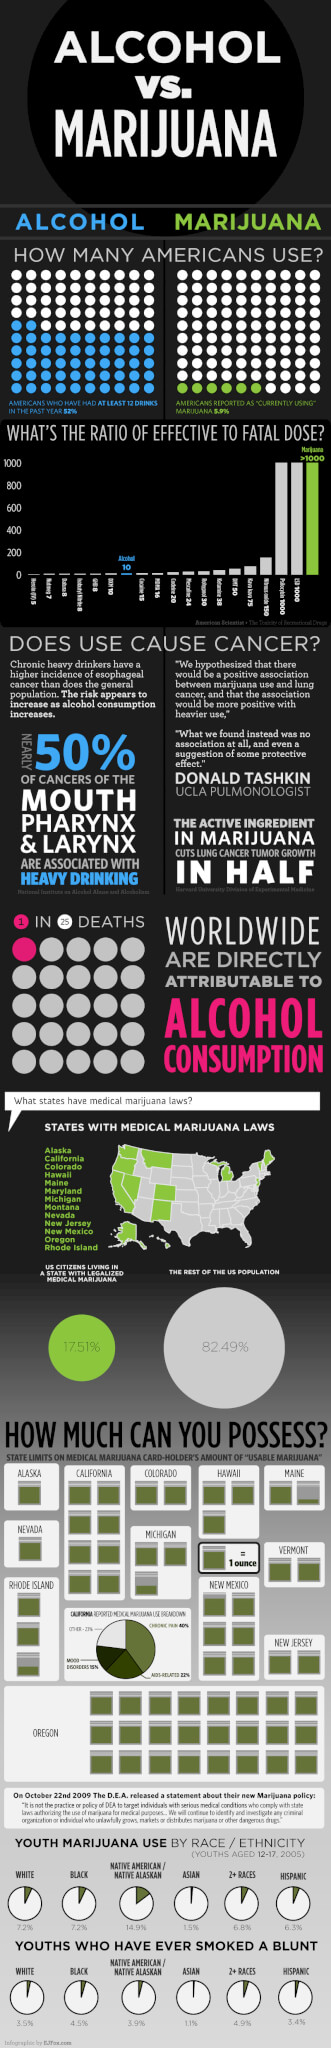 alcohol-vs-marijuana-health-infographic2